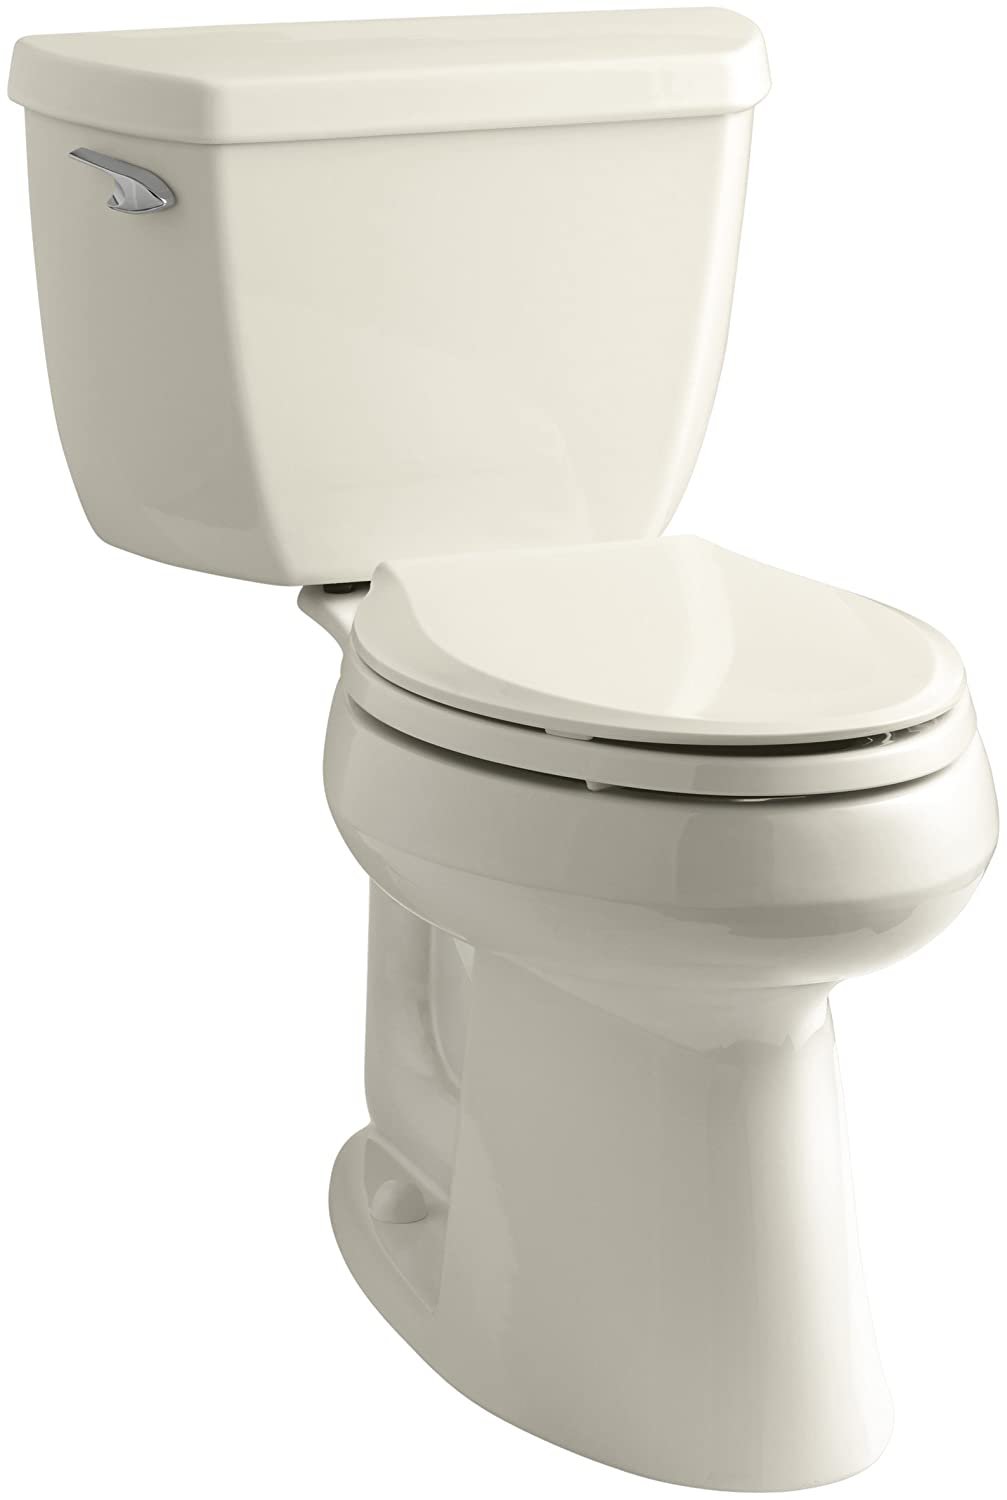 Kohler K 3713 96 Highline Classic Comfort Height Two Piece Elongated